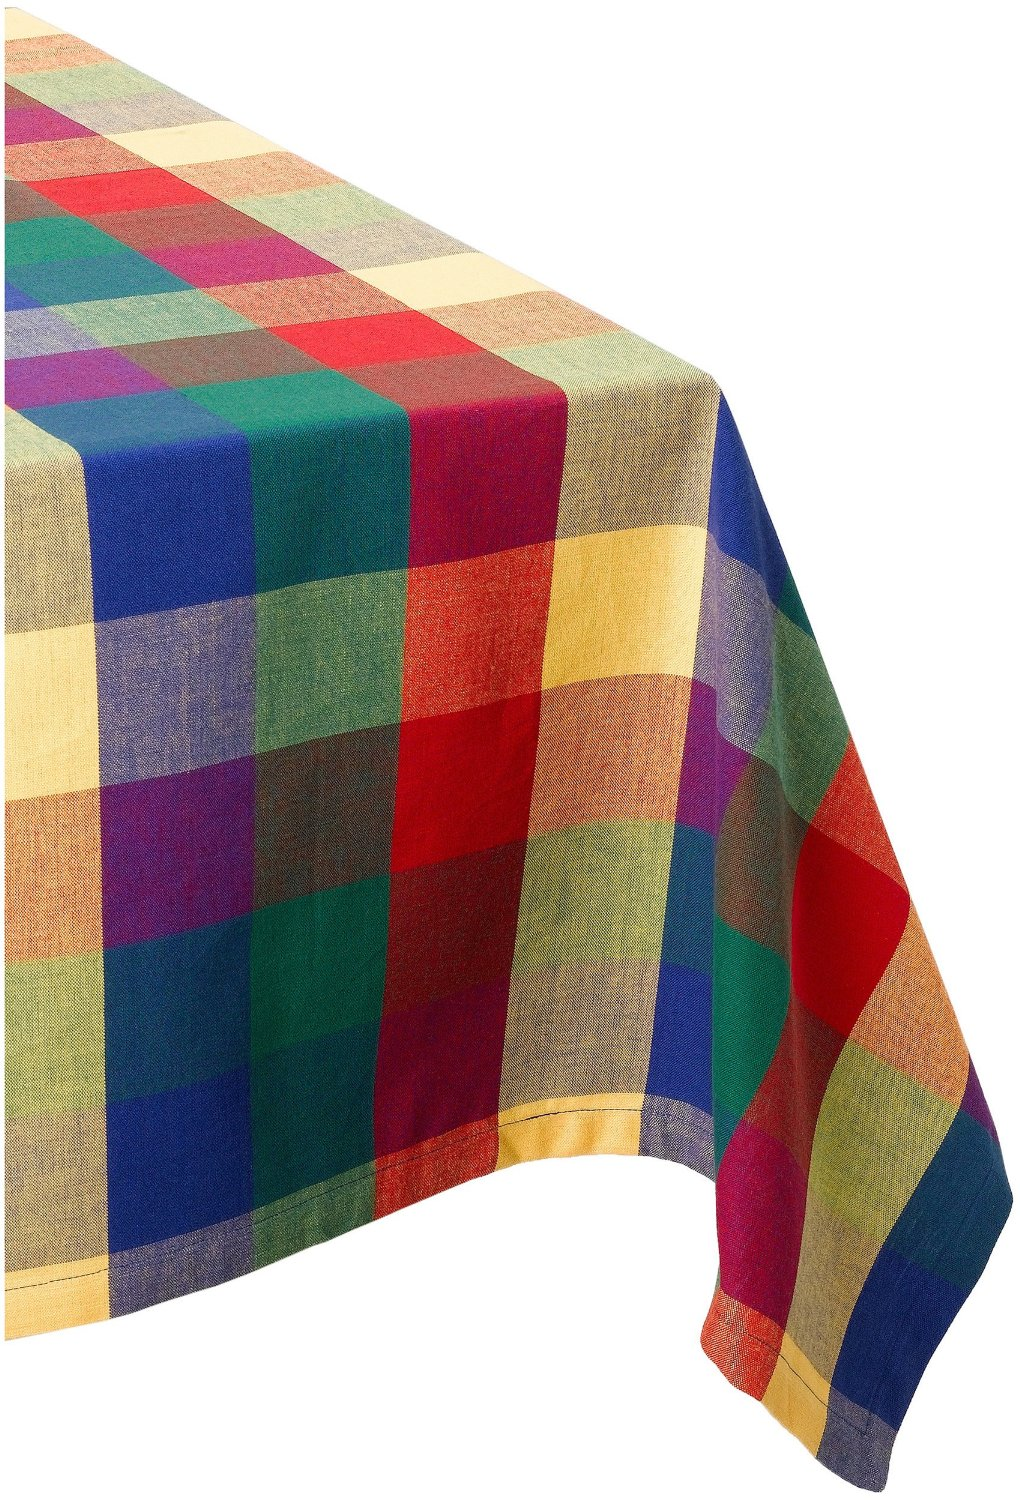 Top 10 Best Disable Table Covers 2020 Reviews